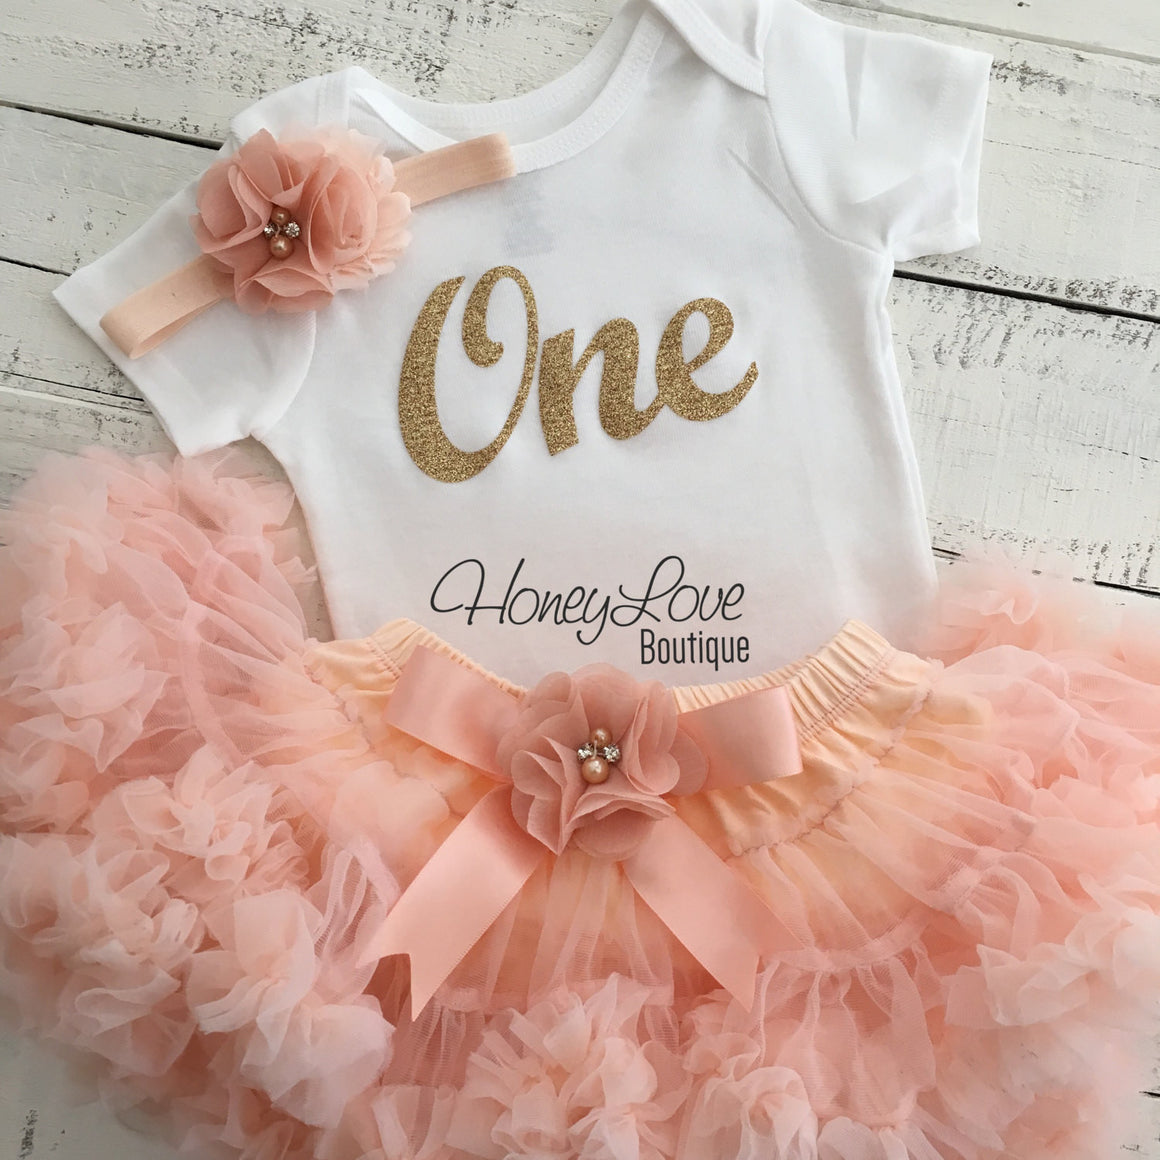 One - Birthday Outfit - Gold glitter and Peach - embellished pettiskirt